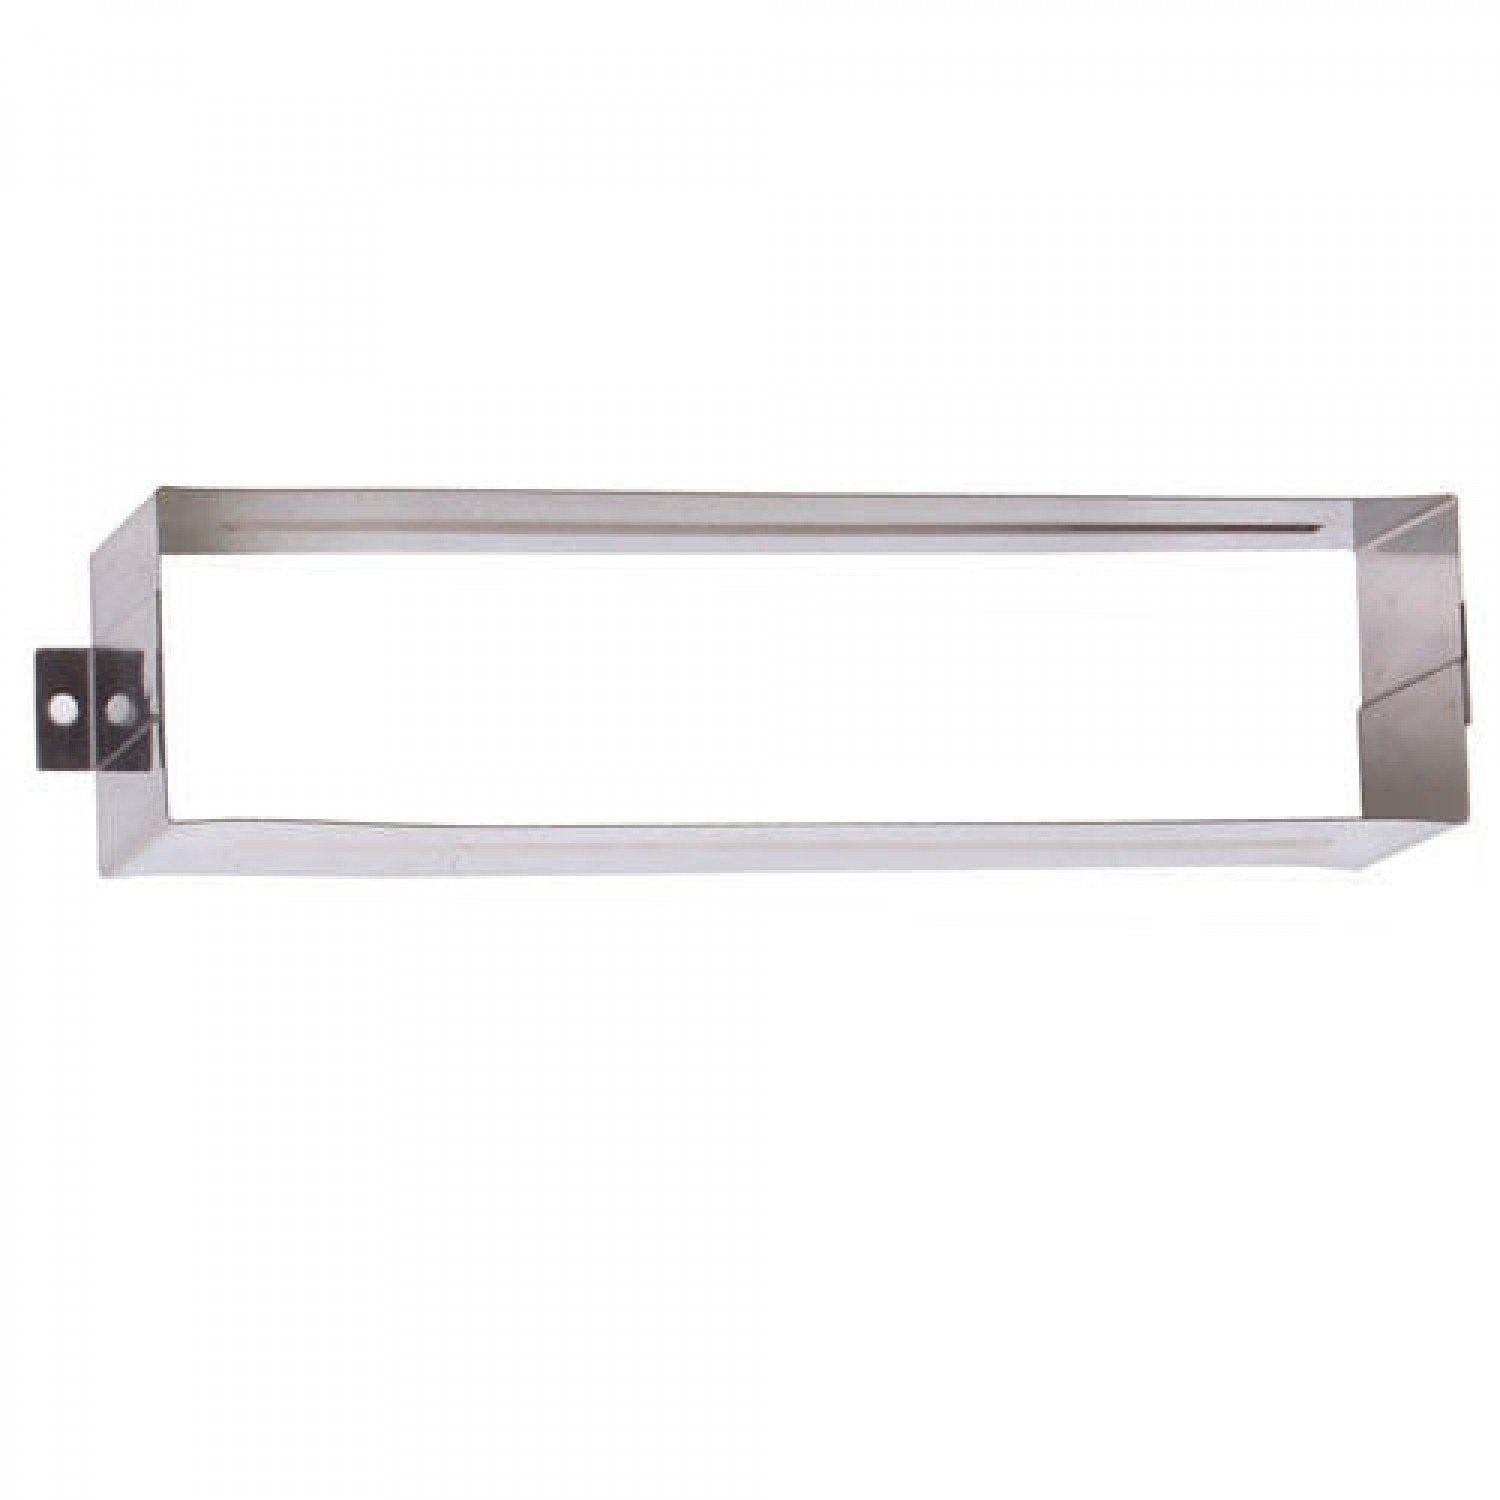 Naiture Small Mail Slot Interior Sleeve-for 10'' X 3'' Mail Slot - Stainless Steel